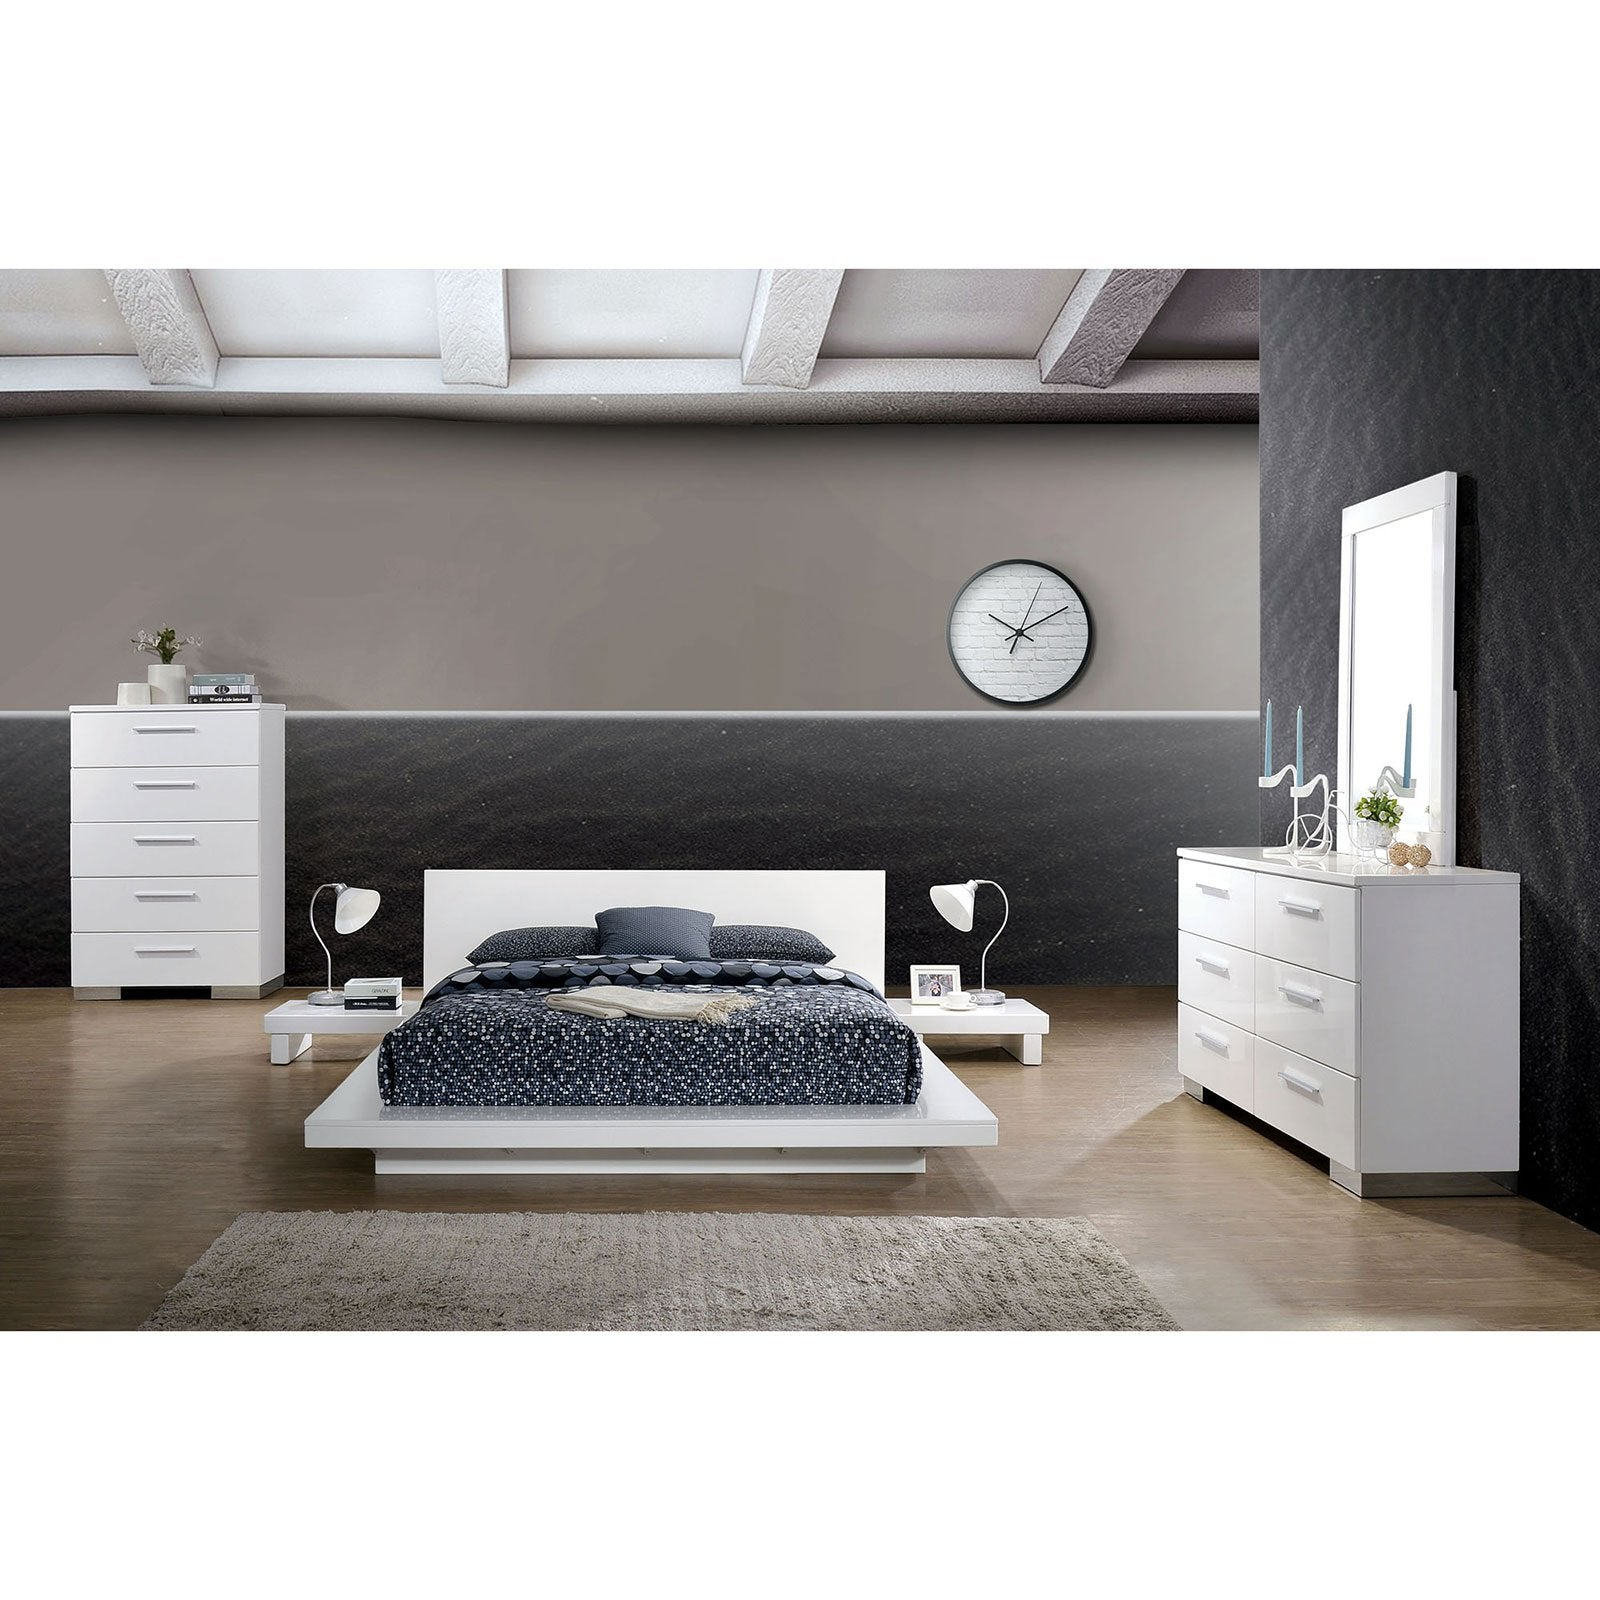 Christie Platform Bed Cal.King Bed White (Bed Only) - InteriorDesignsToGo.com